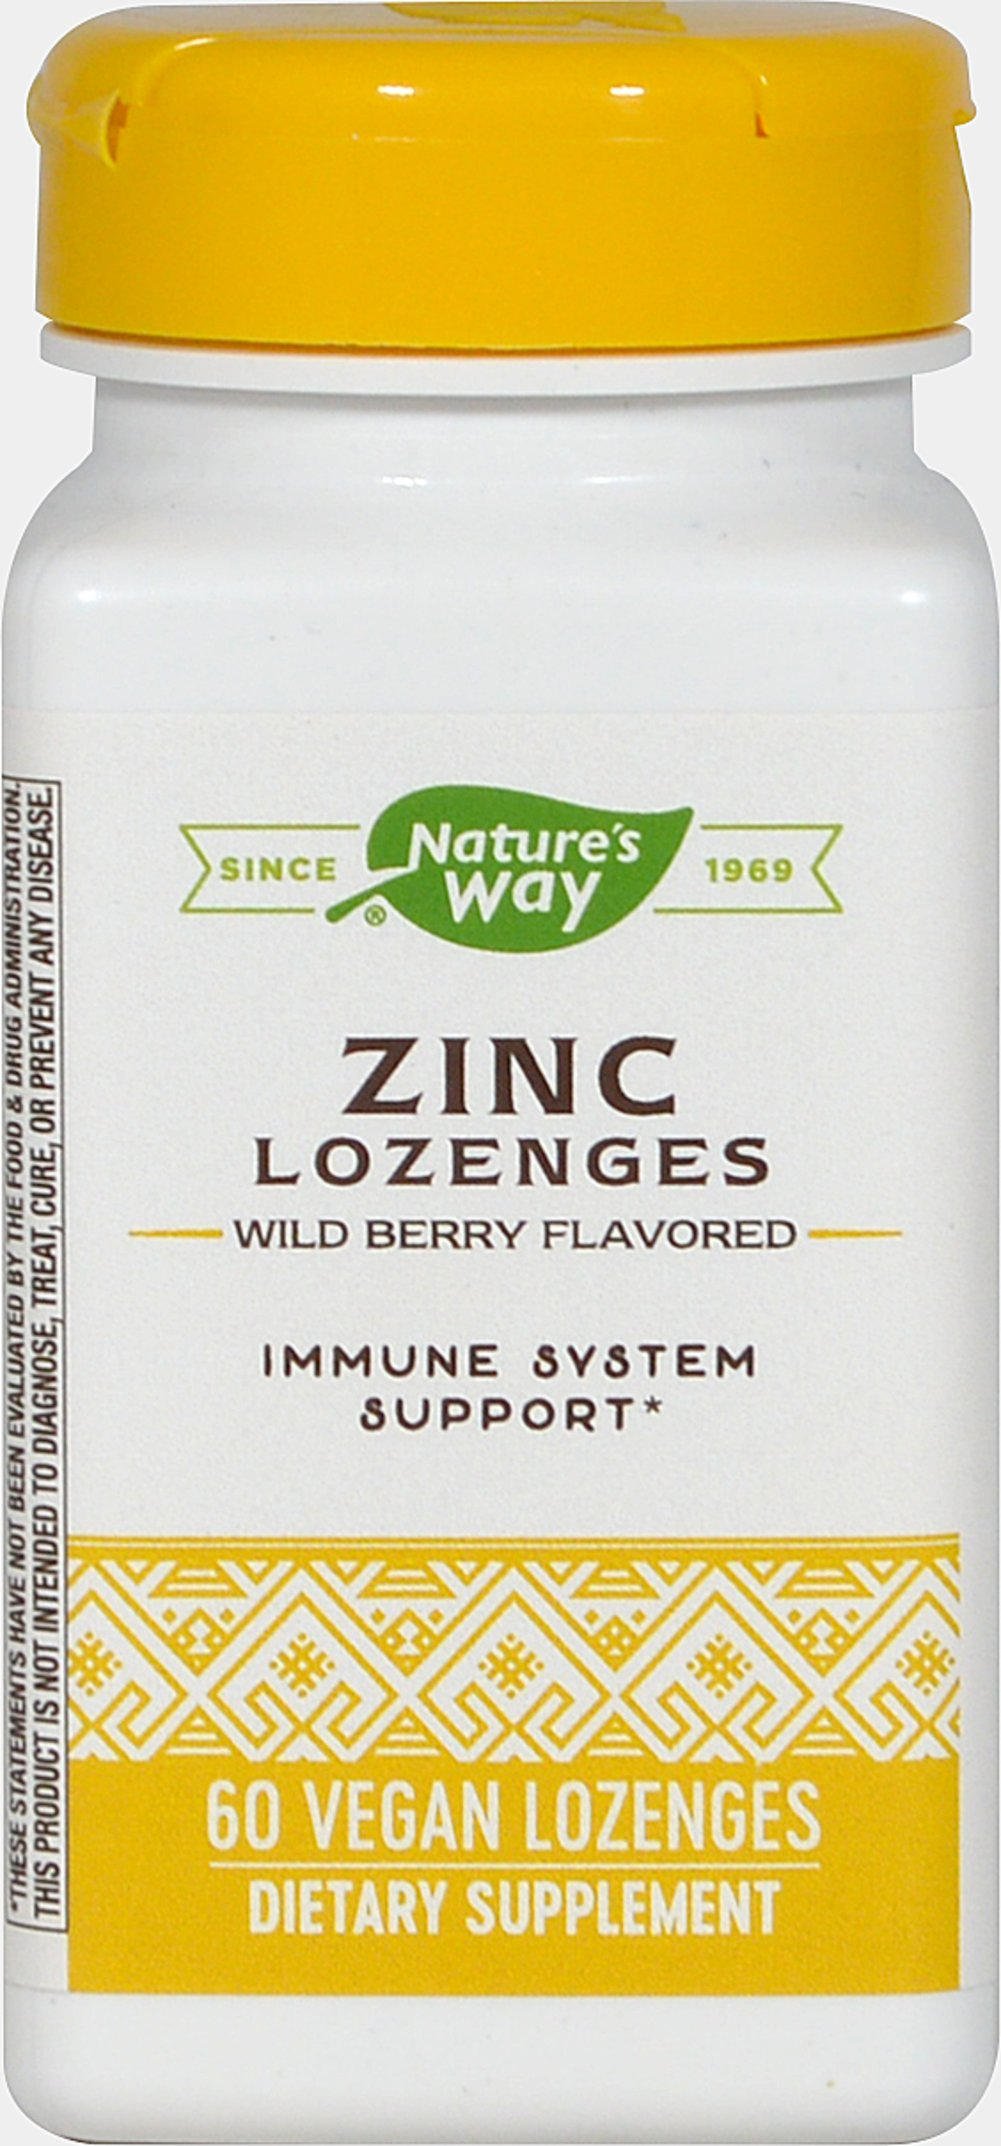 Mineral Products Zinc Lozenges With Echinacea And Vitamin C